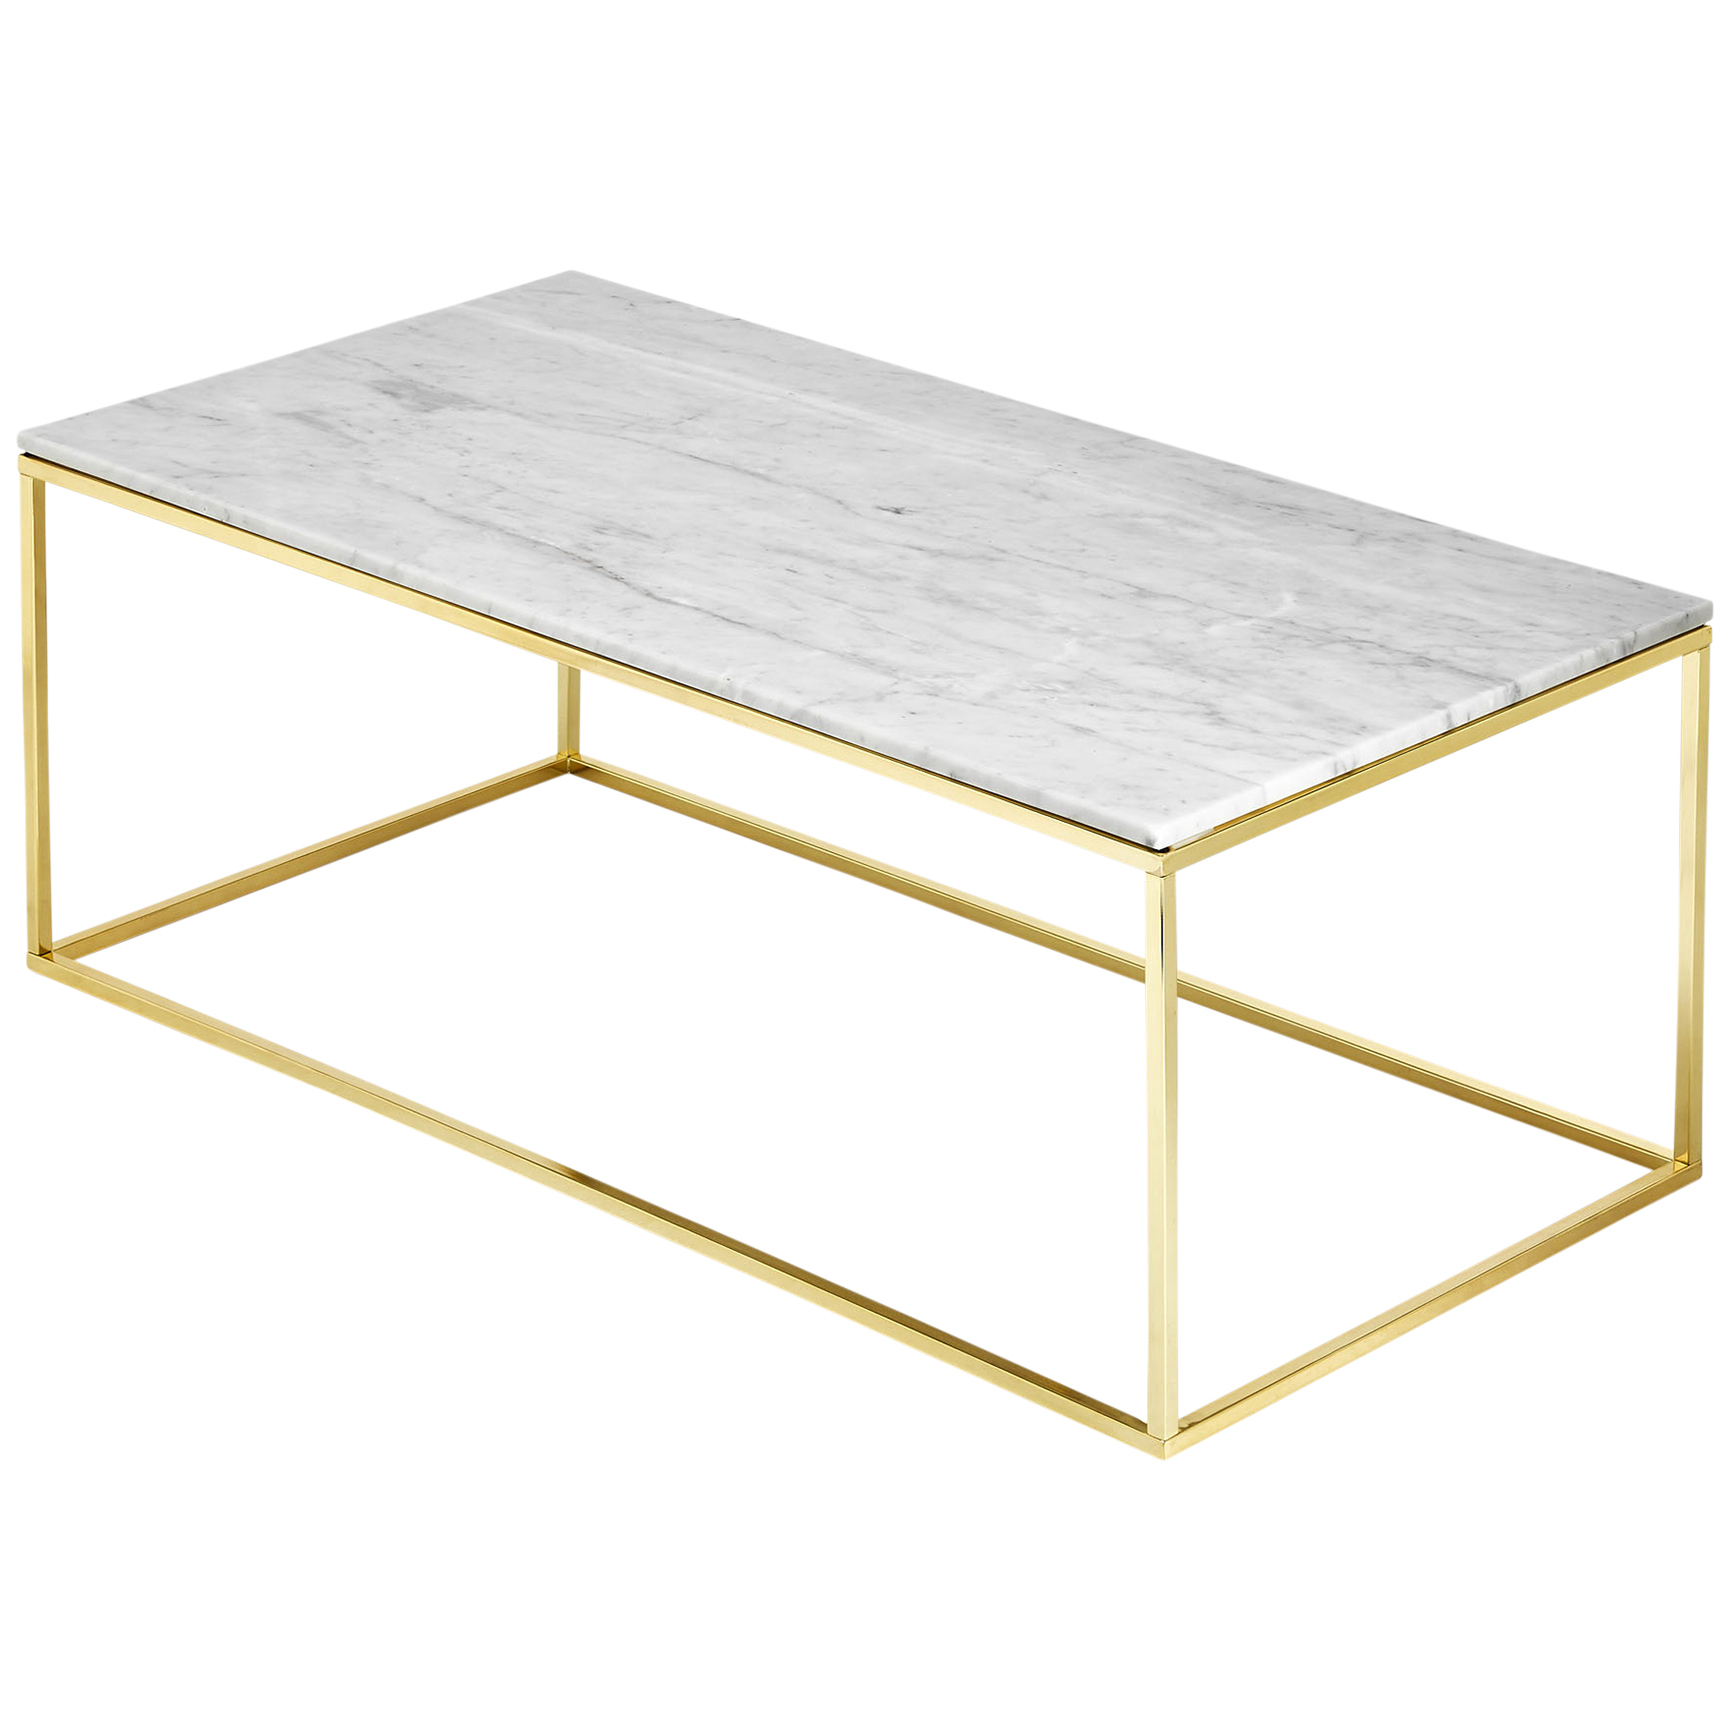 Preferred Go Cart White Rolling Coffee Tables Throughout Estudio Furniture Como White Marble Coffee Table & Reviews (View 19 of 20)